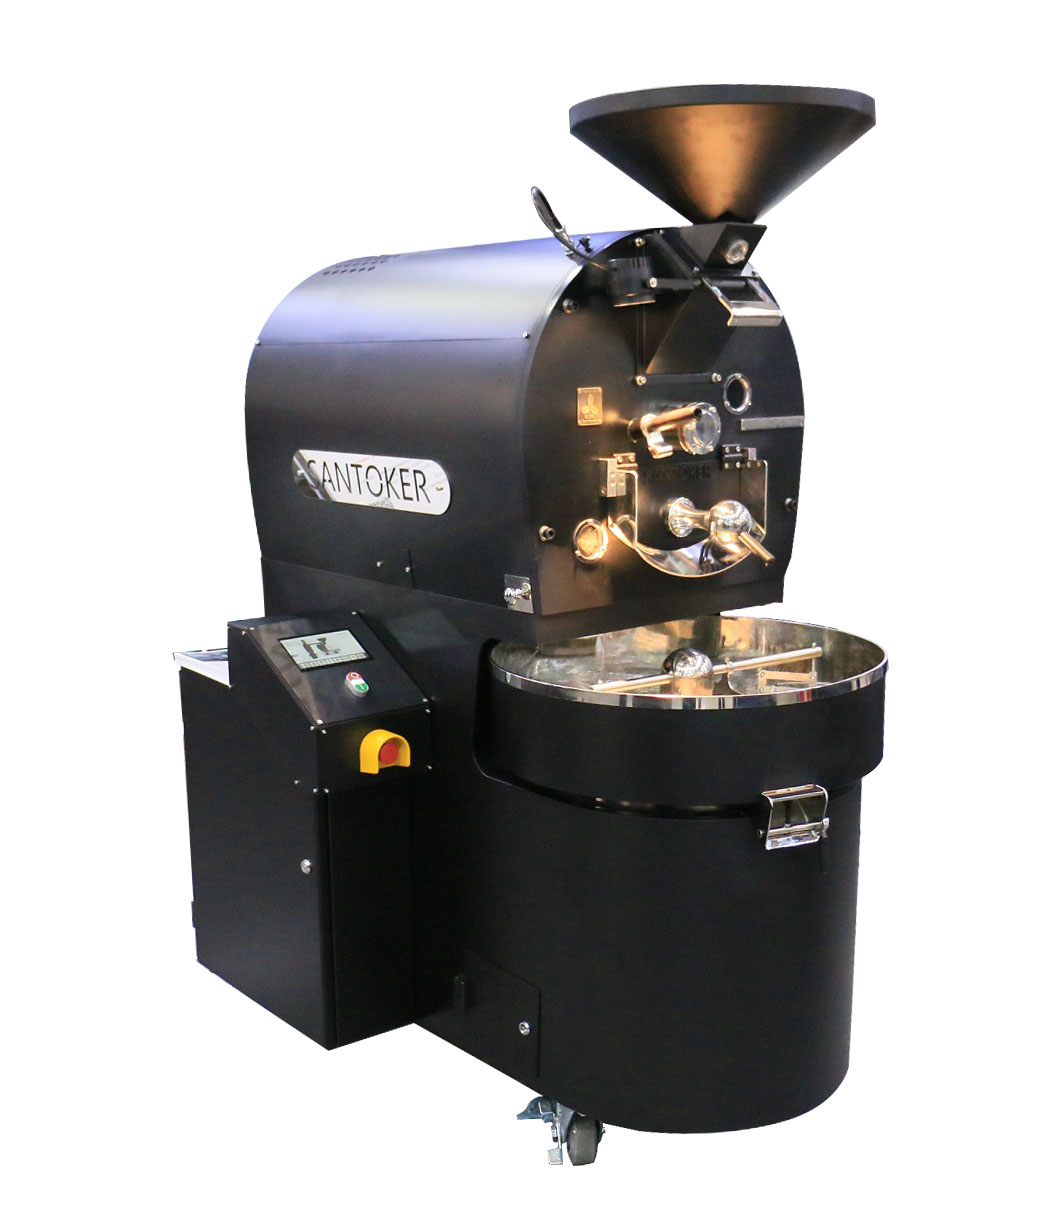 Santoker 12kg Coffee Roaster